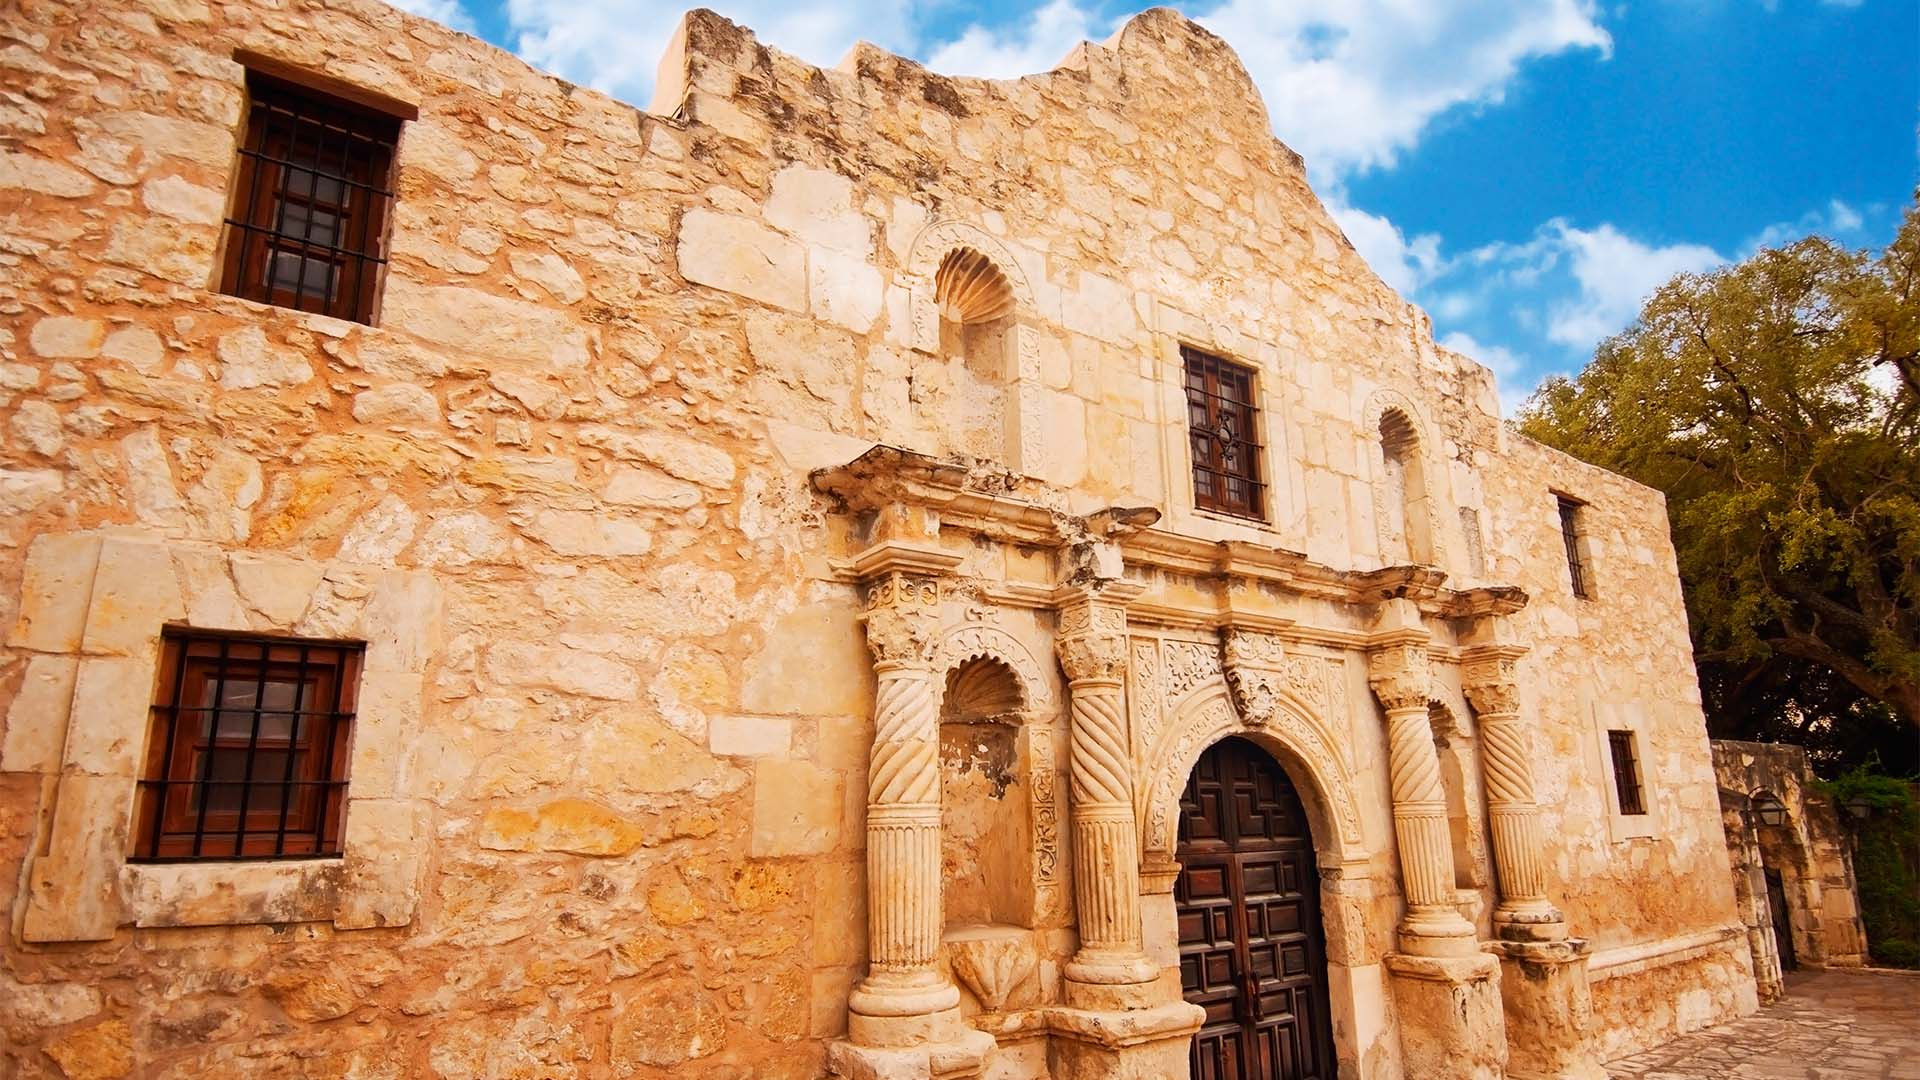 The Alamo, San Antonion, Texas